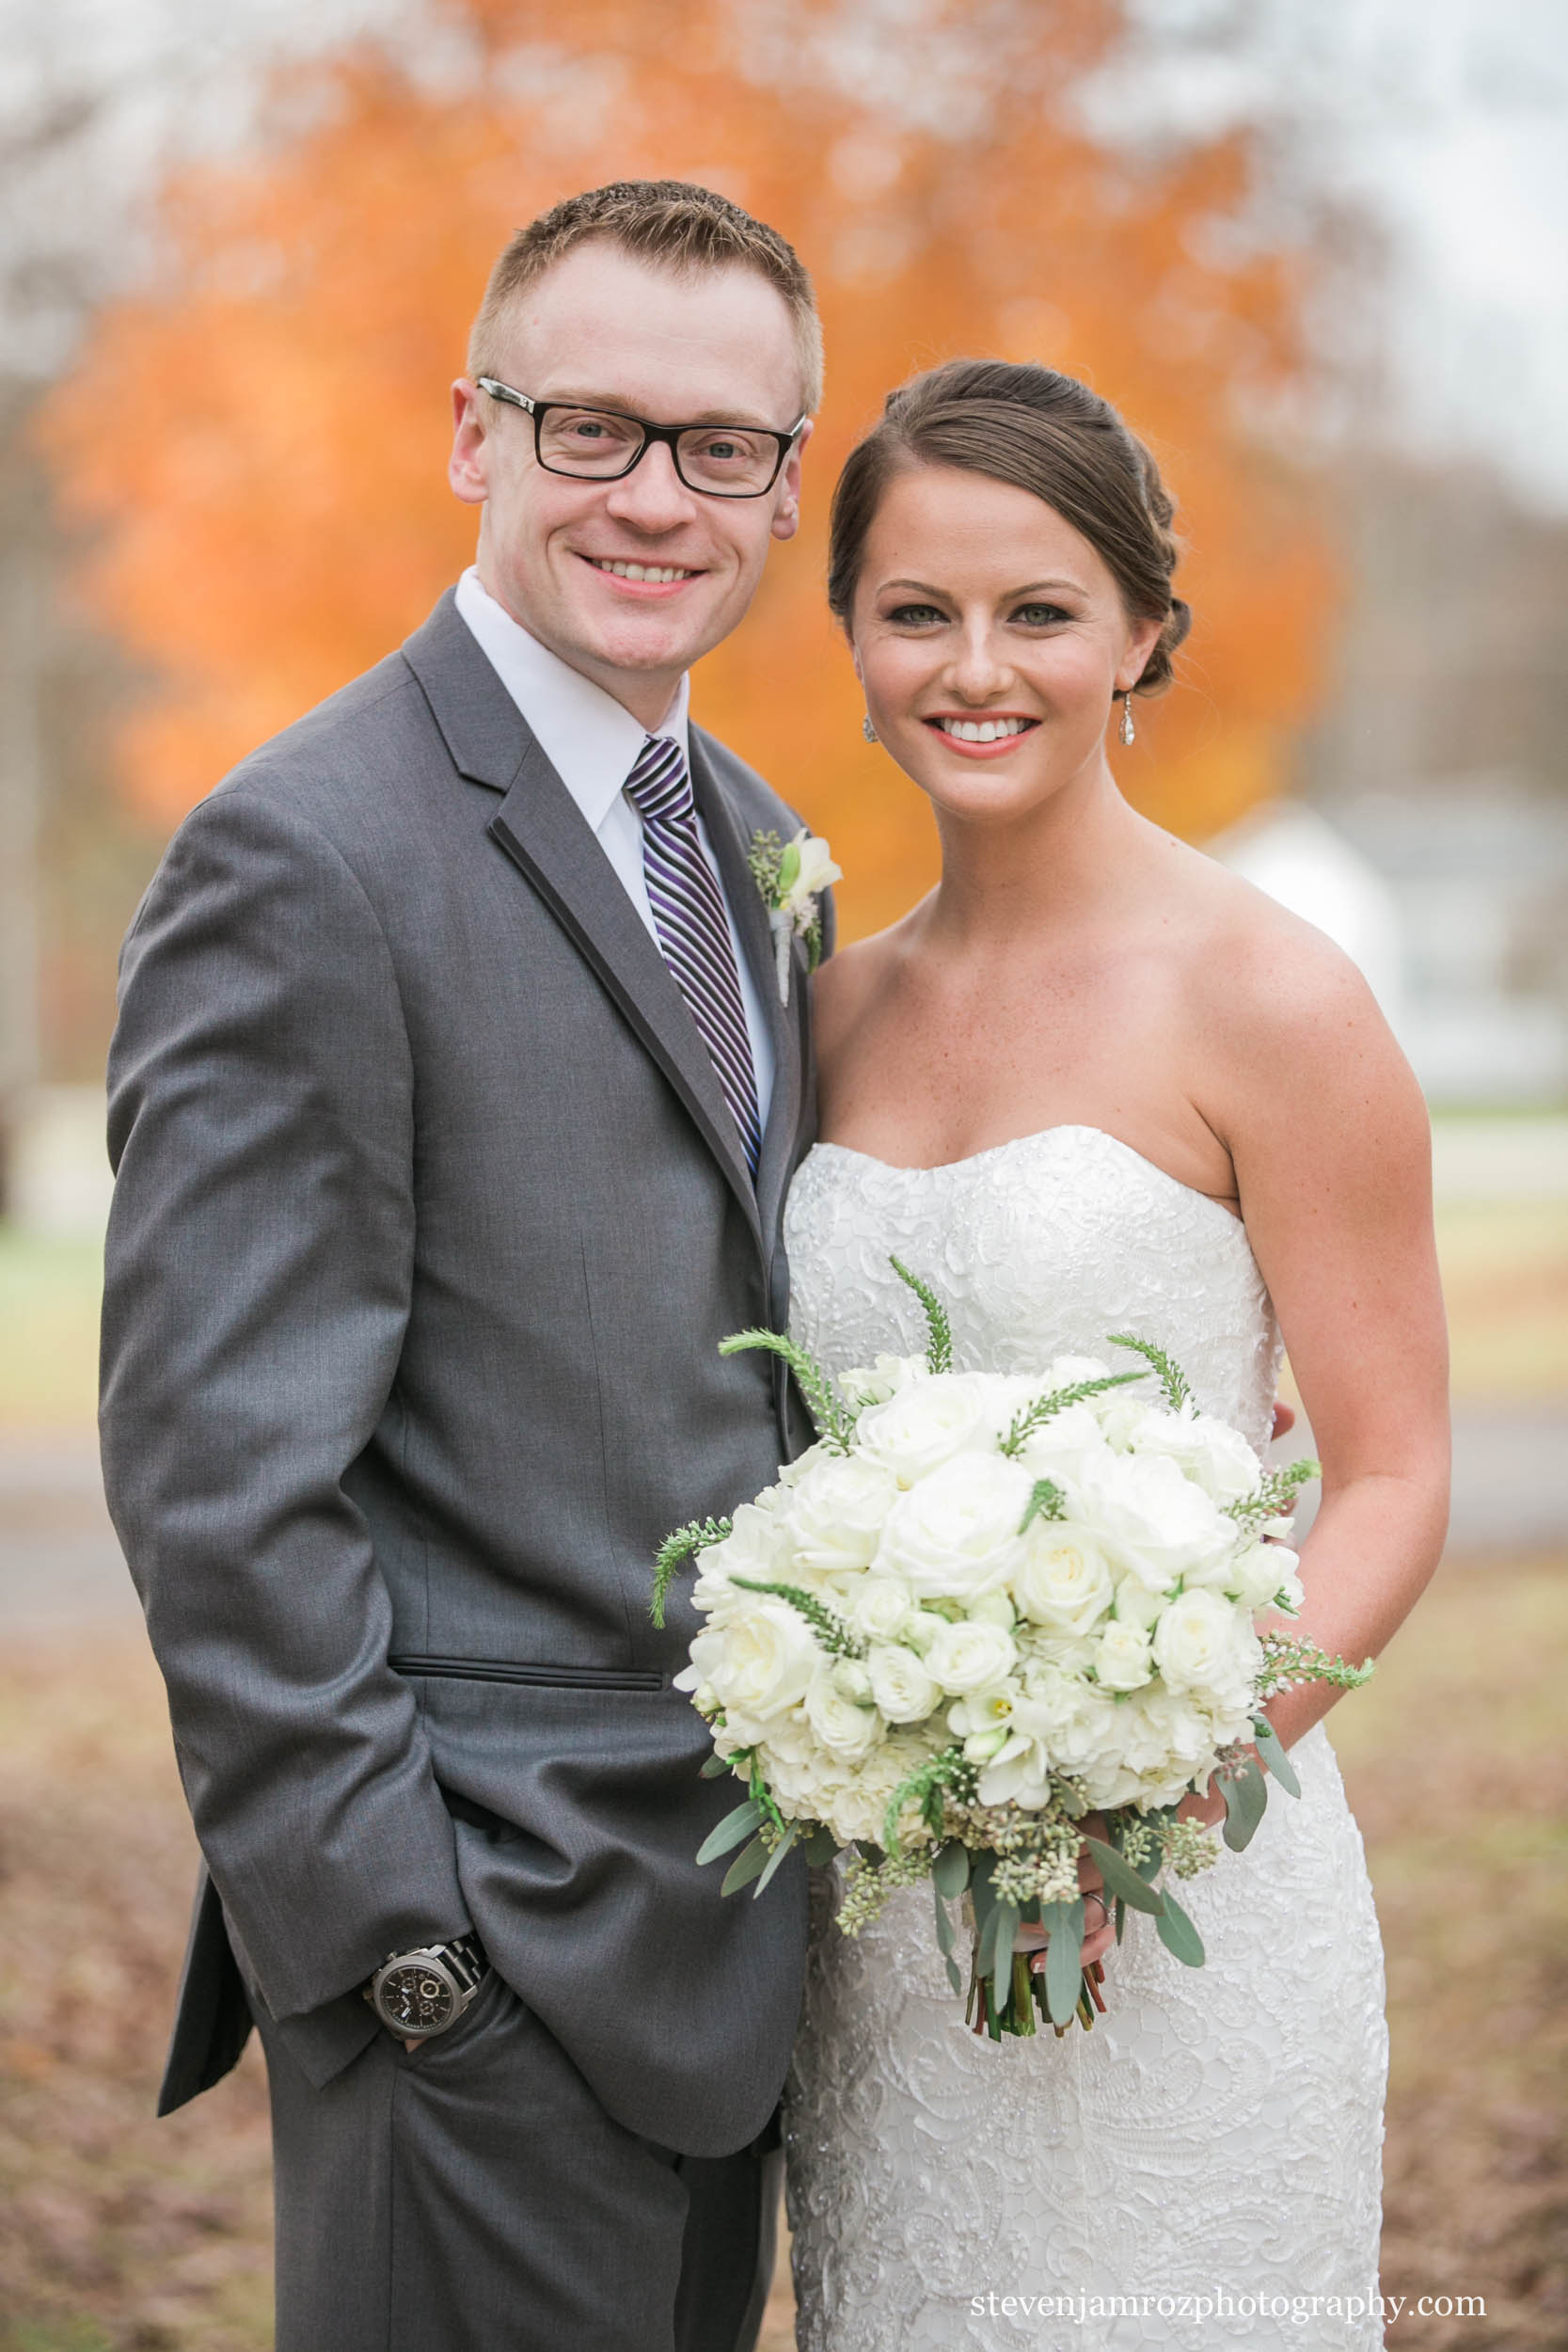 fall-wedding-at-hudson-manor-louisburg-nc-steven-jamroz-photography-0149.jpg